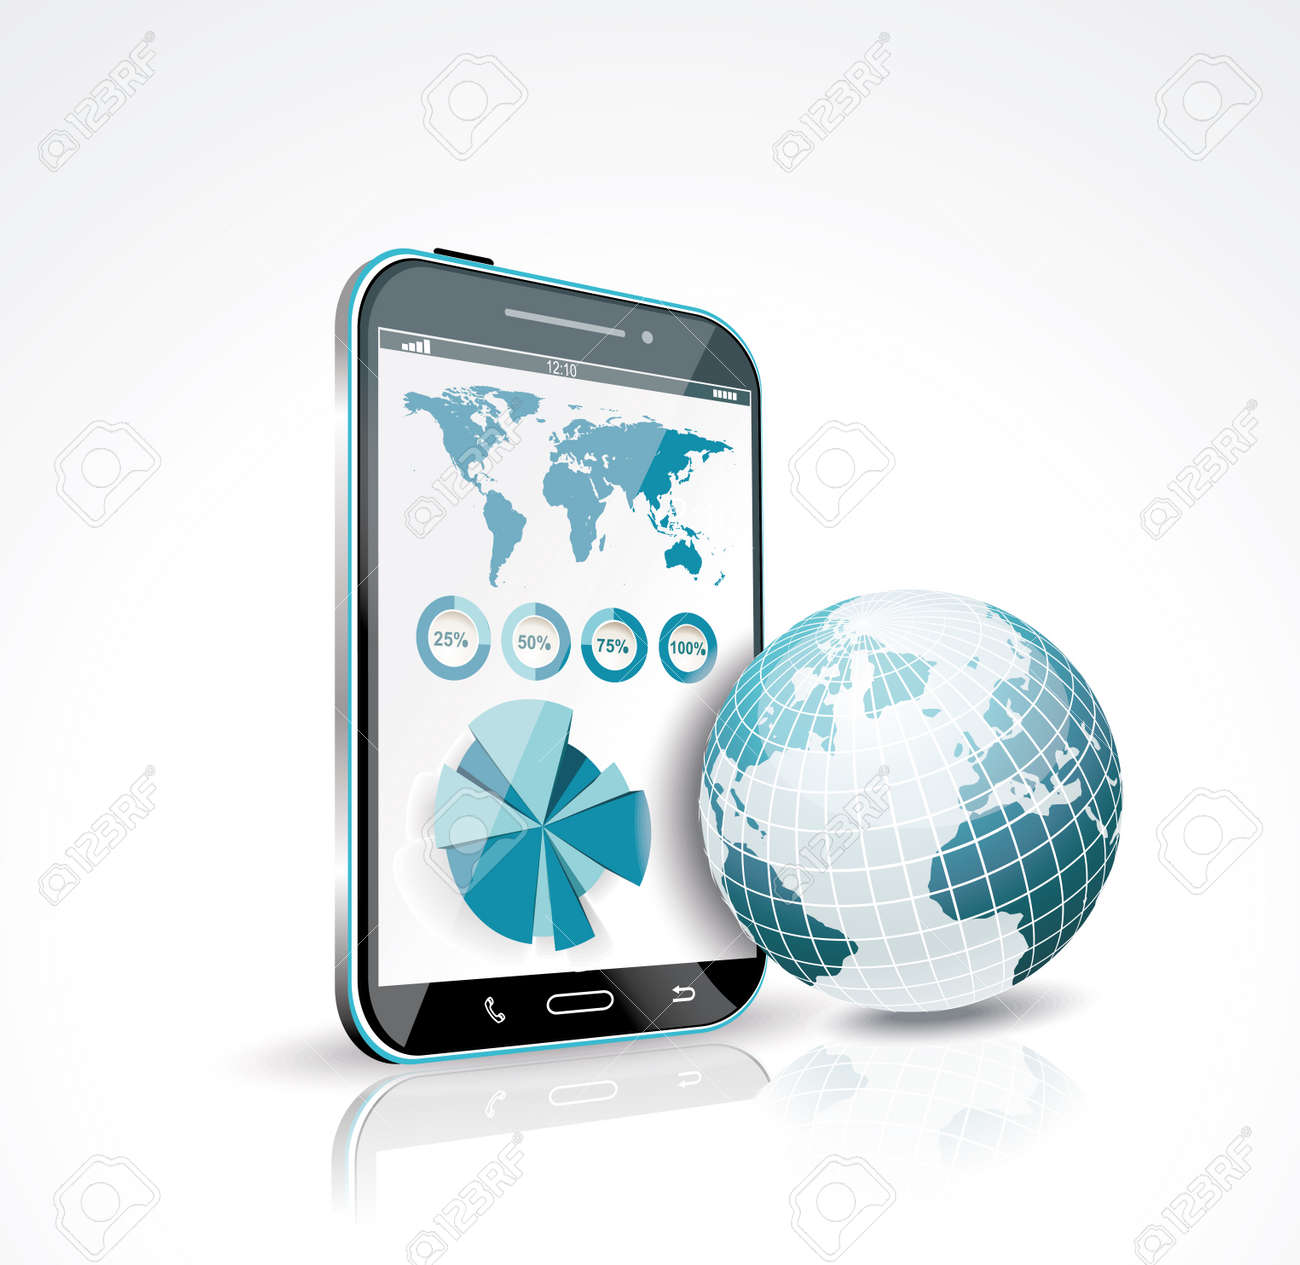 Illustration of a smart phone and globe  Vector Stock Vector - 19430480